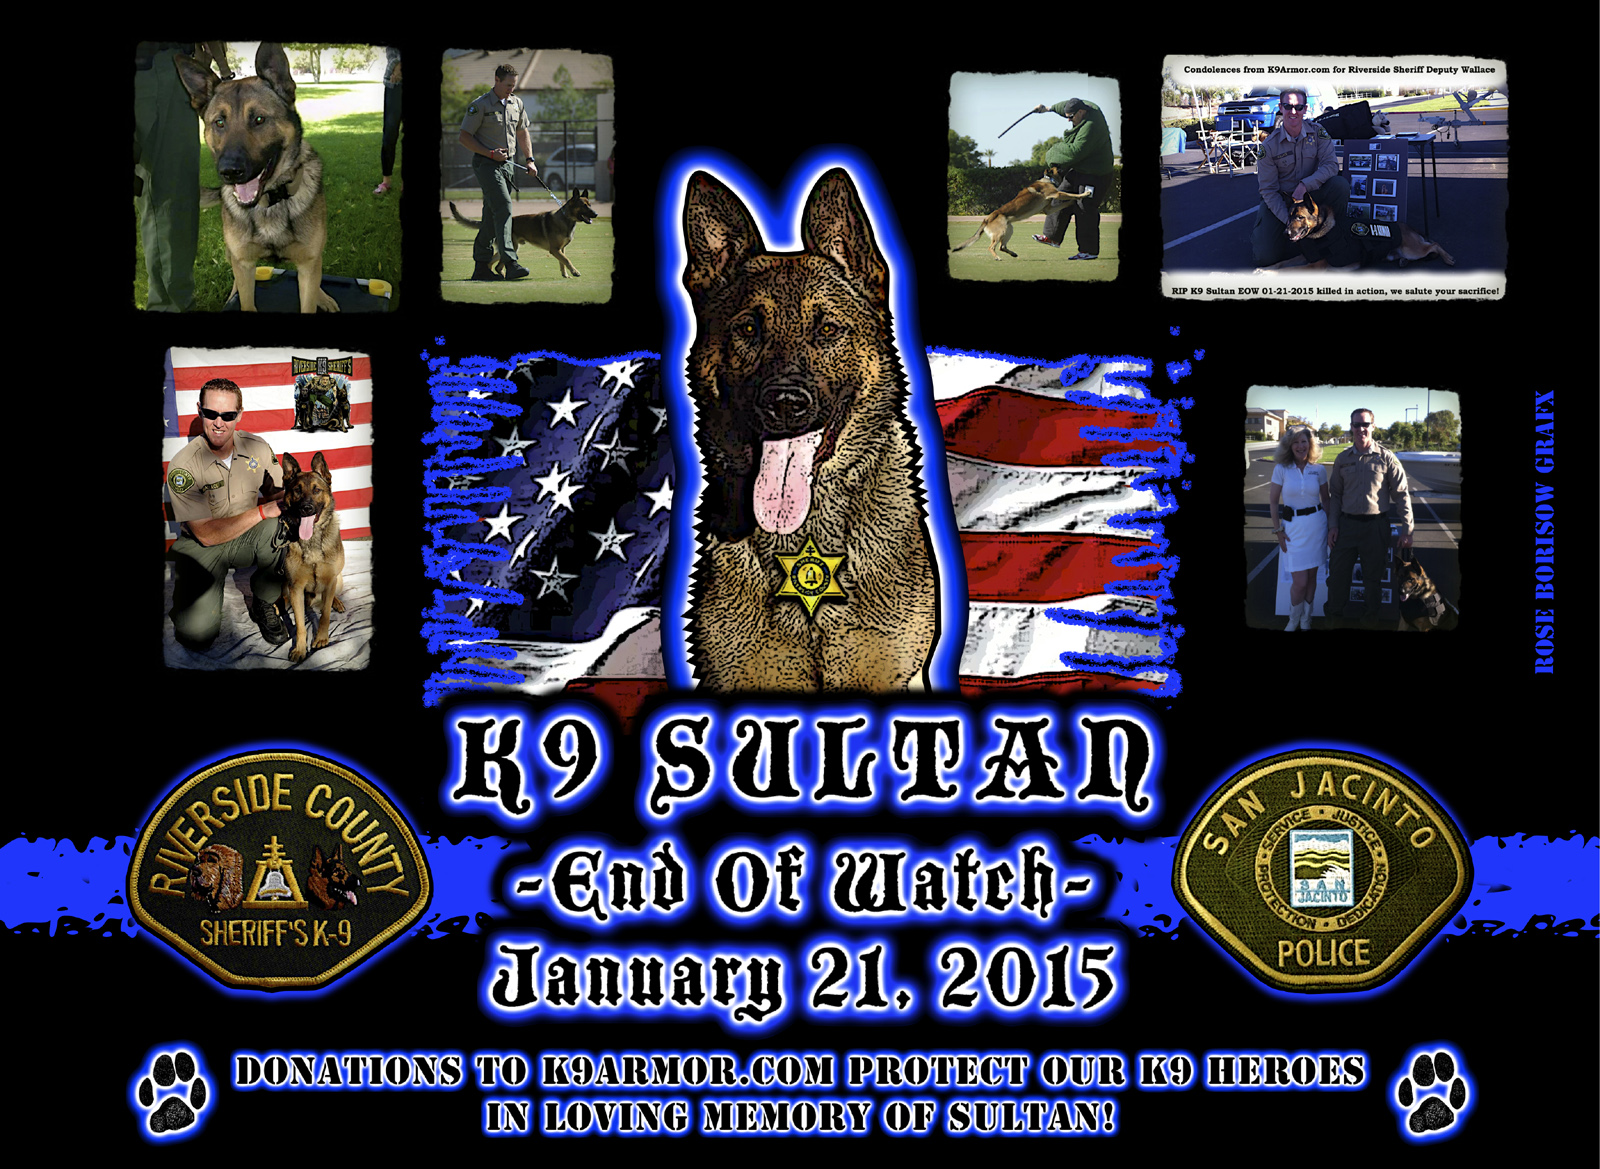 Donations to K9Armor.com protect our K9 Heroes in loving memory of K9 Sultan. Memorial Tribute by Officer Rose Borisow